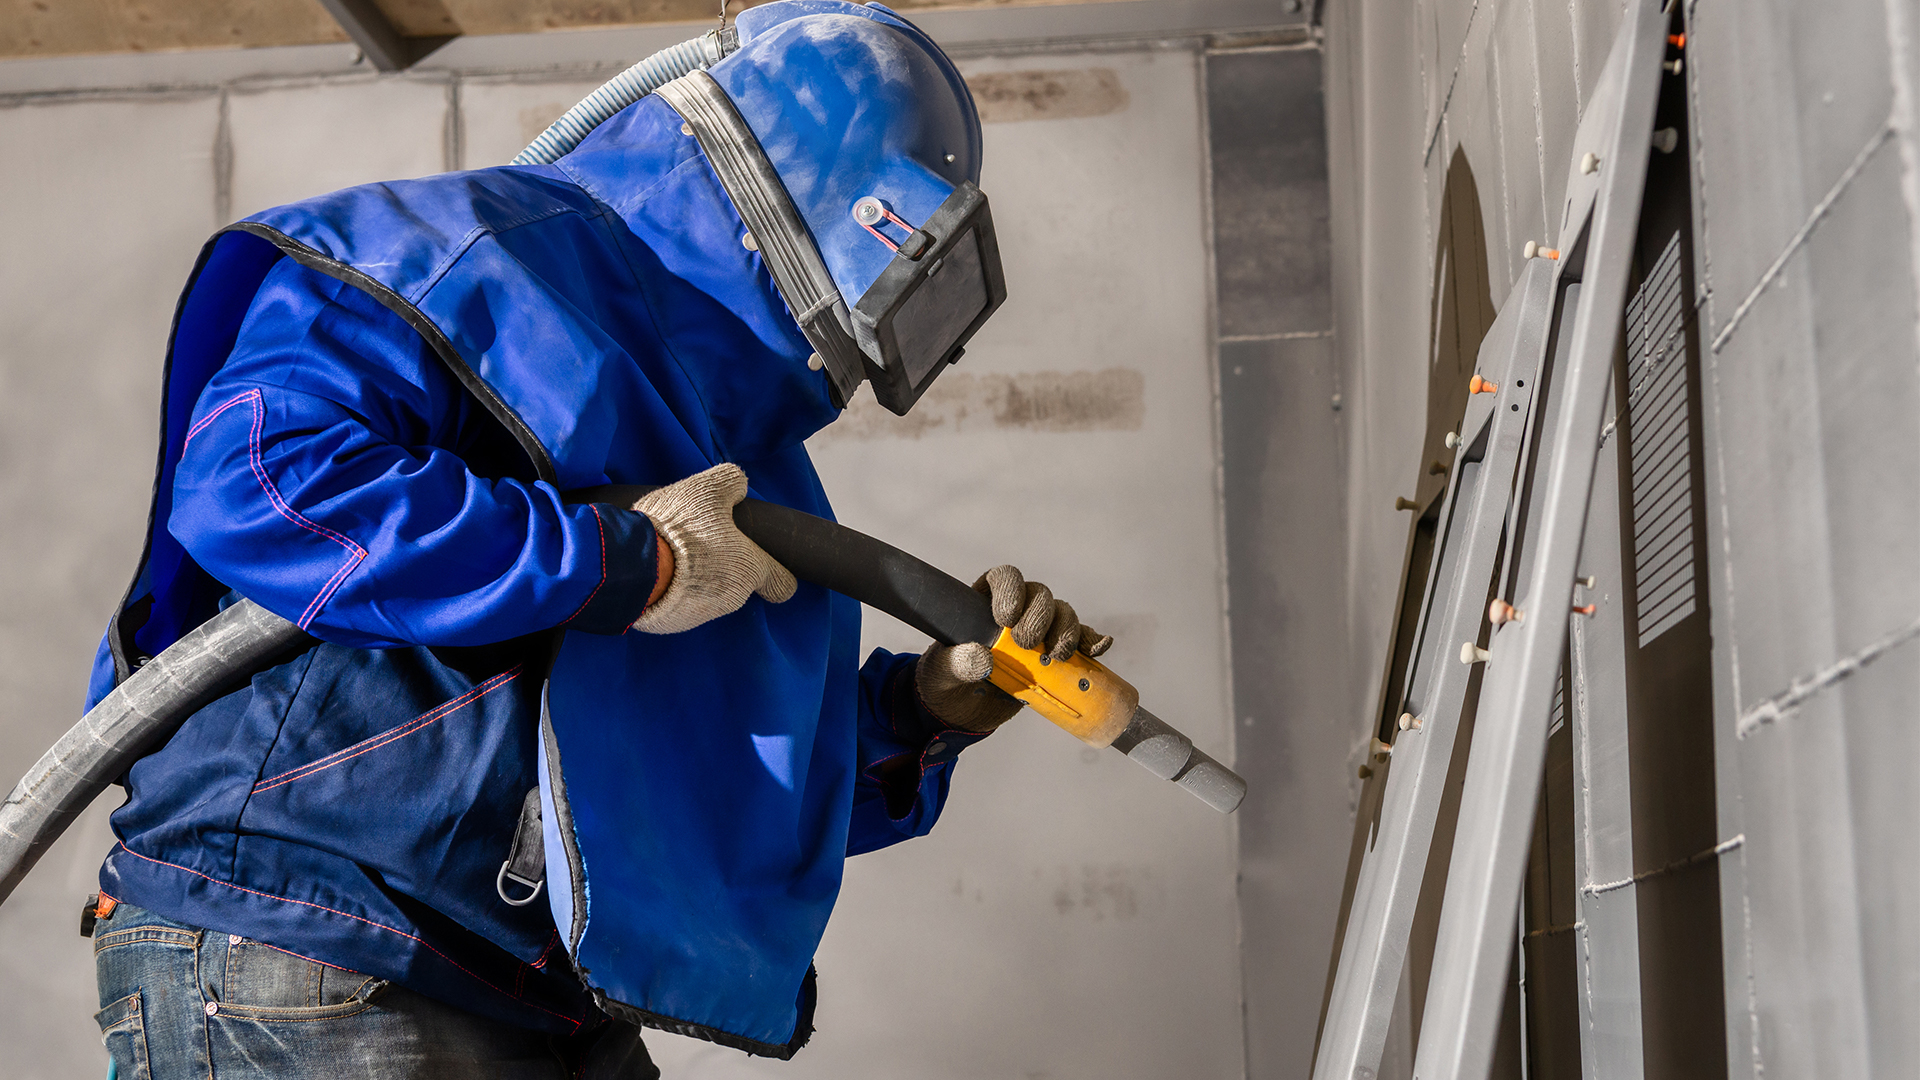 Vapour Blasting & Dustless Blasting Services In Ireland